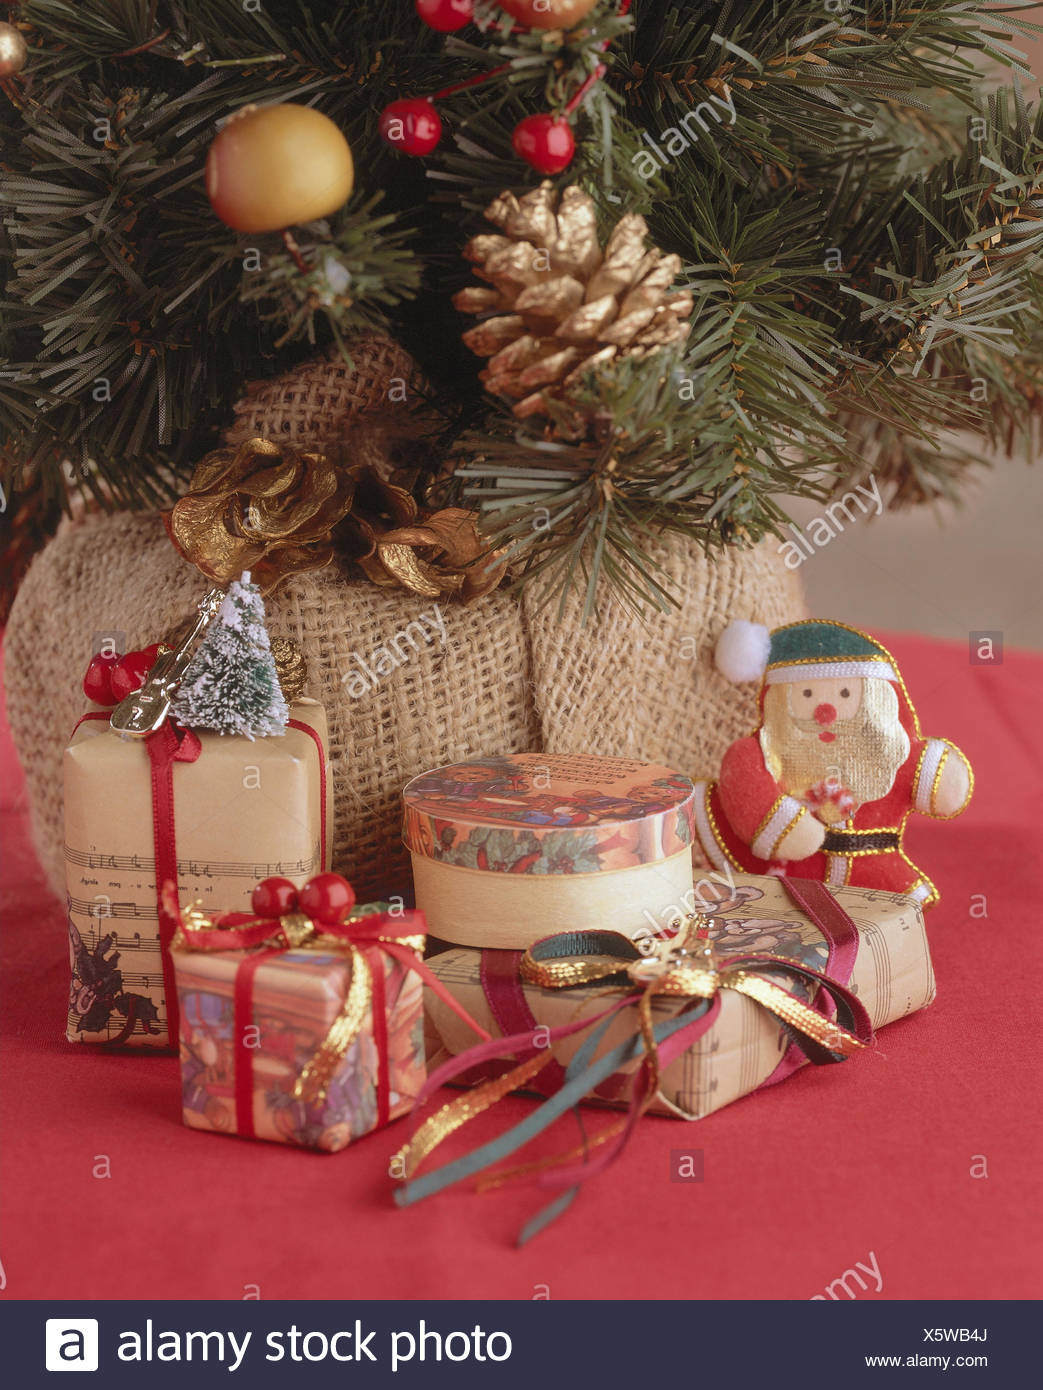 christmas tree presents detail nostalgia nostalgically christmas tree decorated christmas tree decorations christmas jewellery in an old fashioned